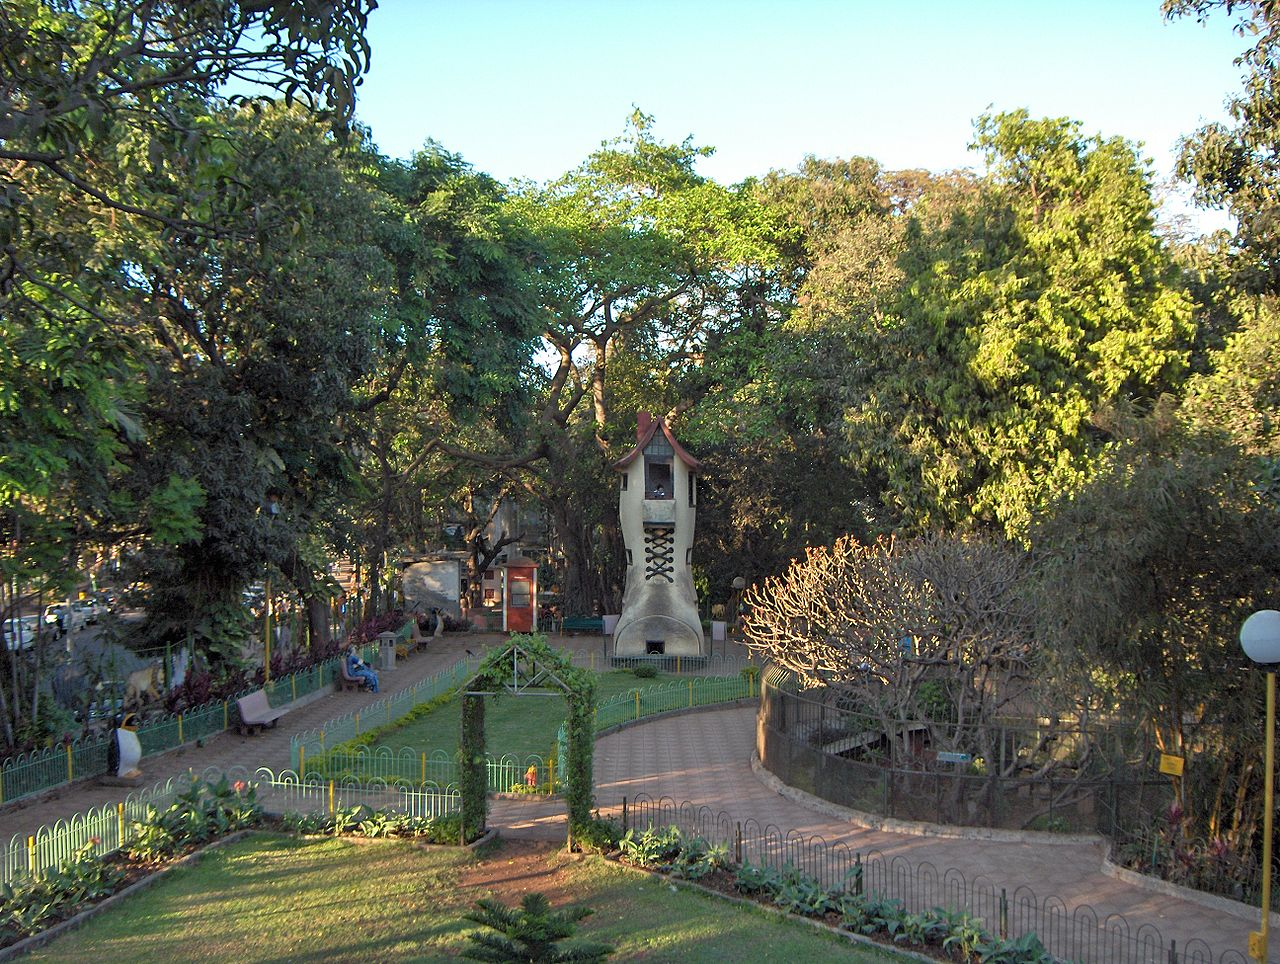 The Tourist Experience of Visiting Hanging Gardens